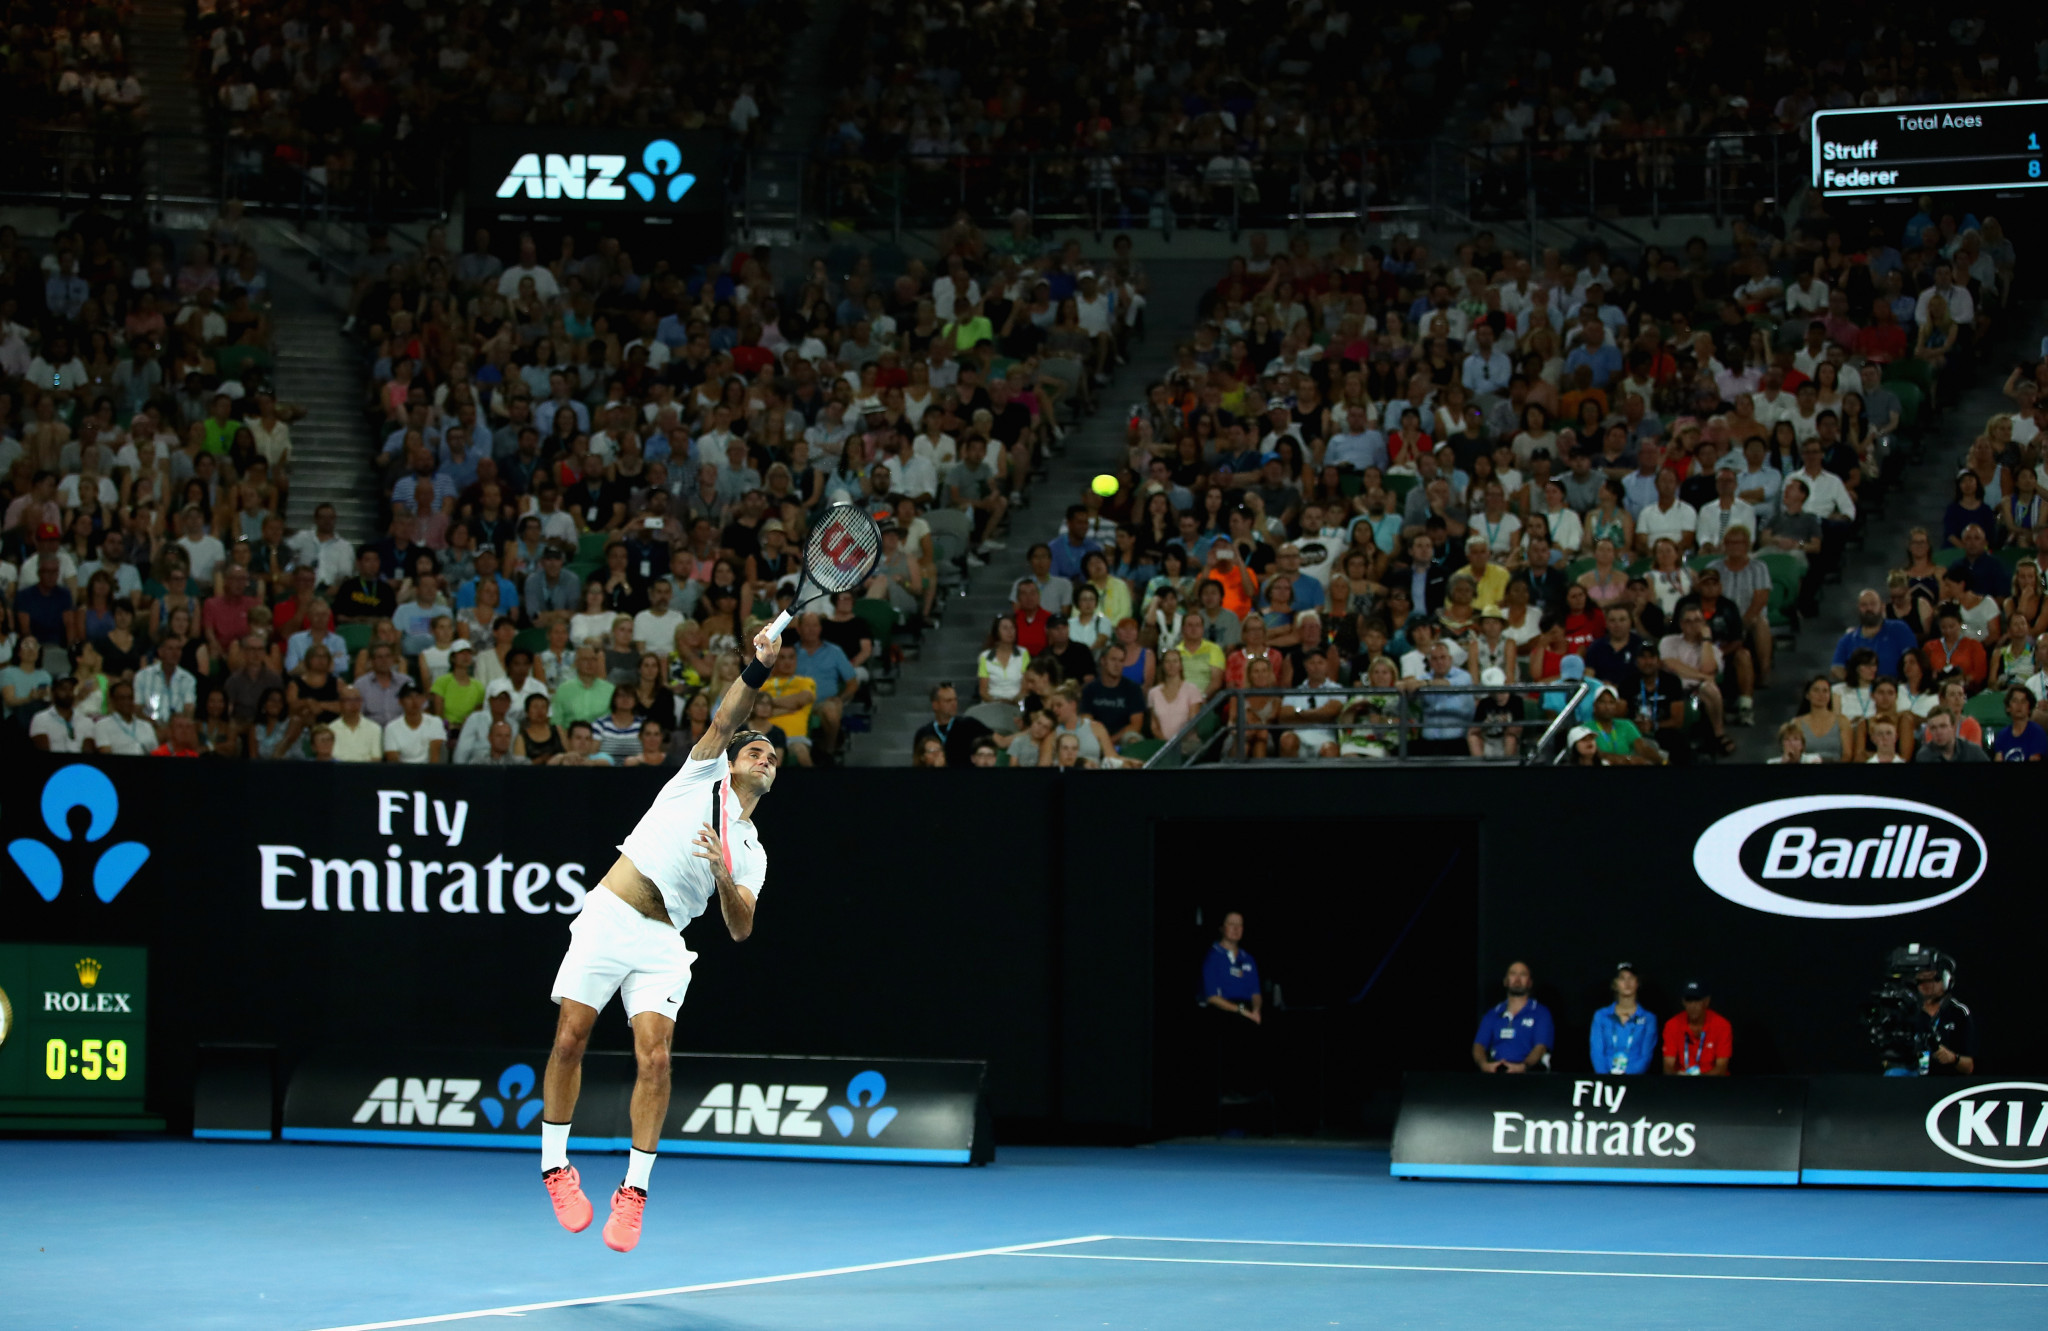 Federer and Halep win on day four of Australian Open